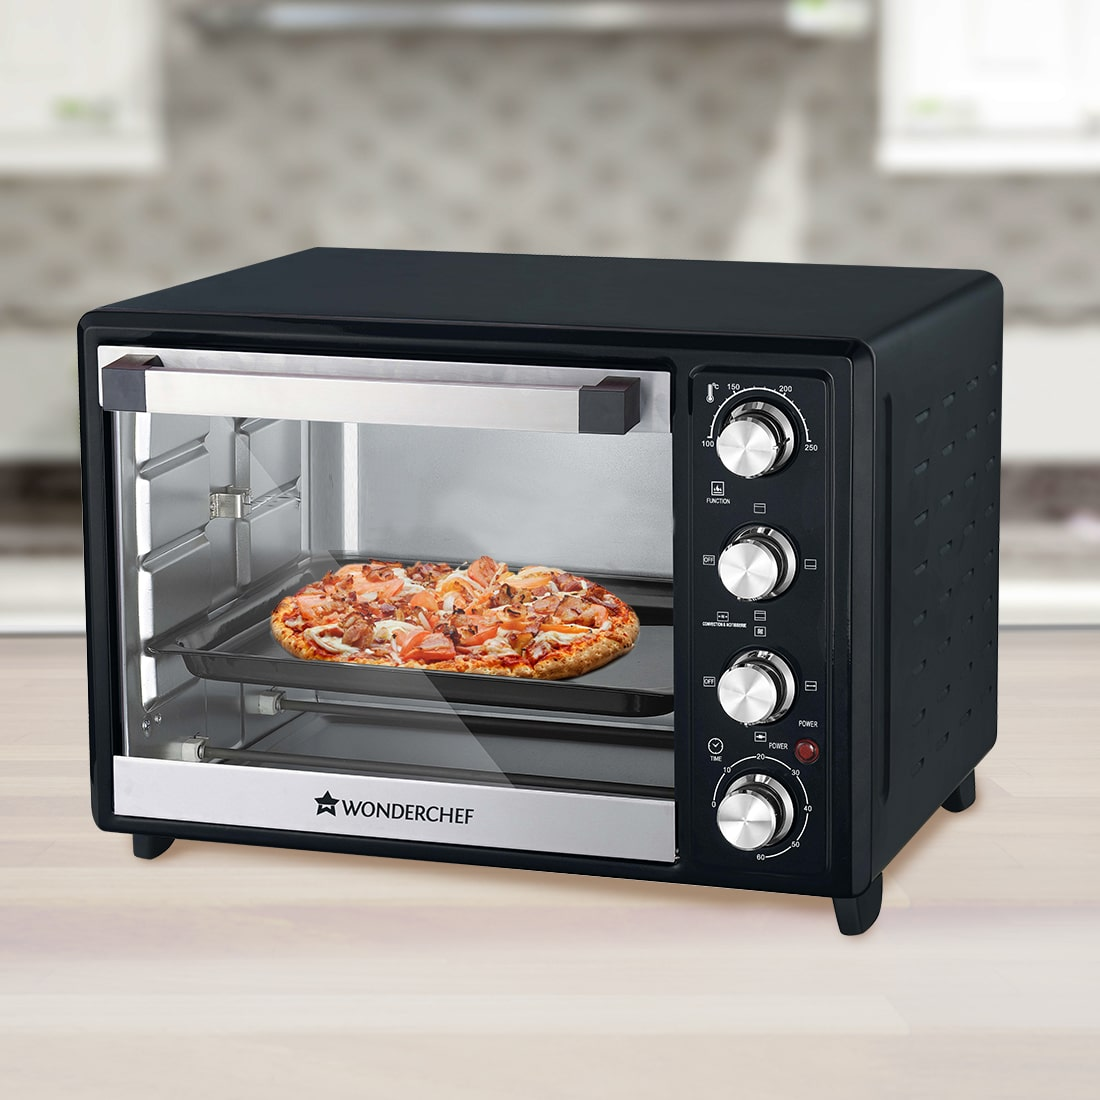 Oven Toaster Griller (OTG) 32 Litres, Stainless Steel With Rotisserie, Auto Power-Off with Bell, Heat Resistant Glass Window